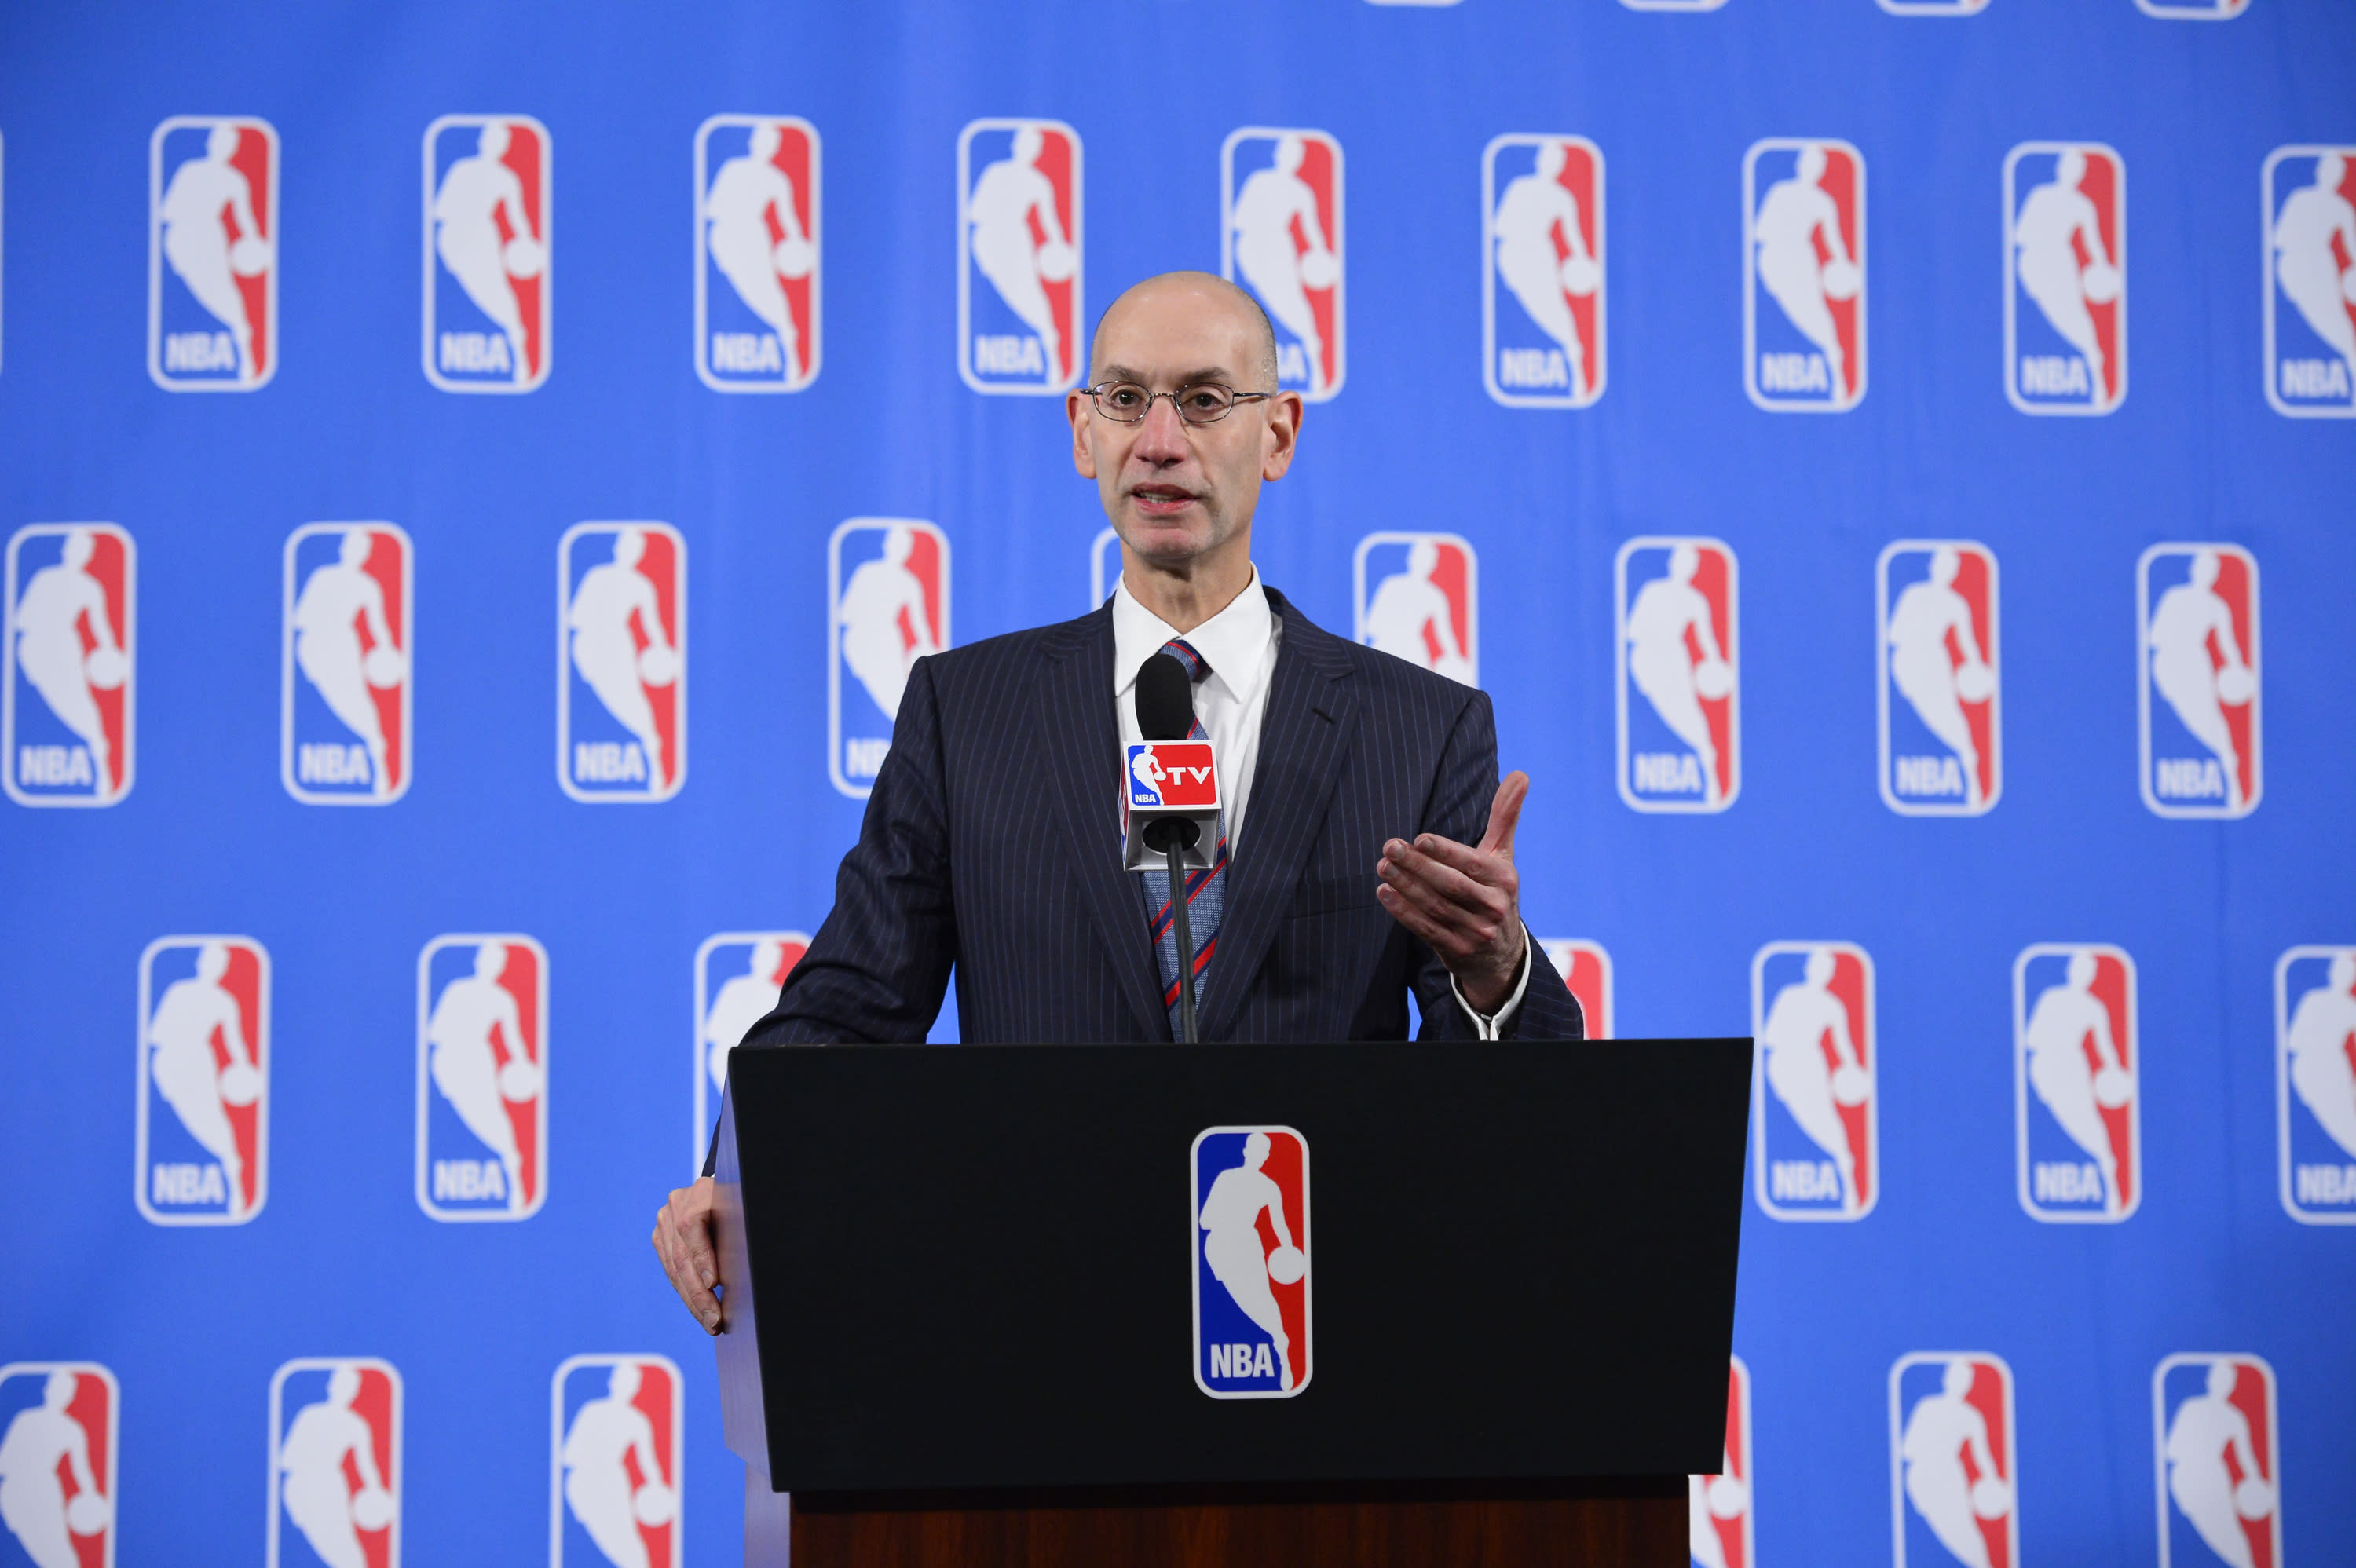 NBA could alter schedule, but no change to playoffs, lottery